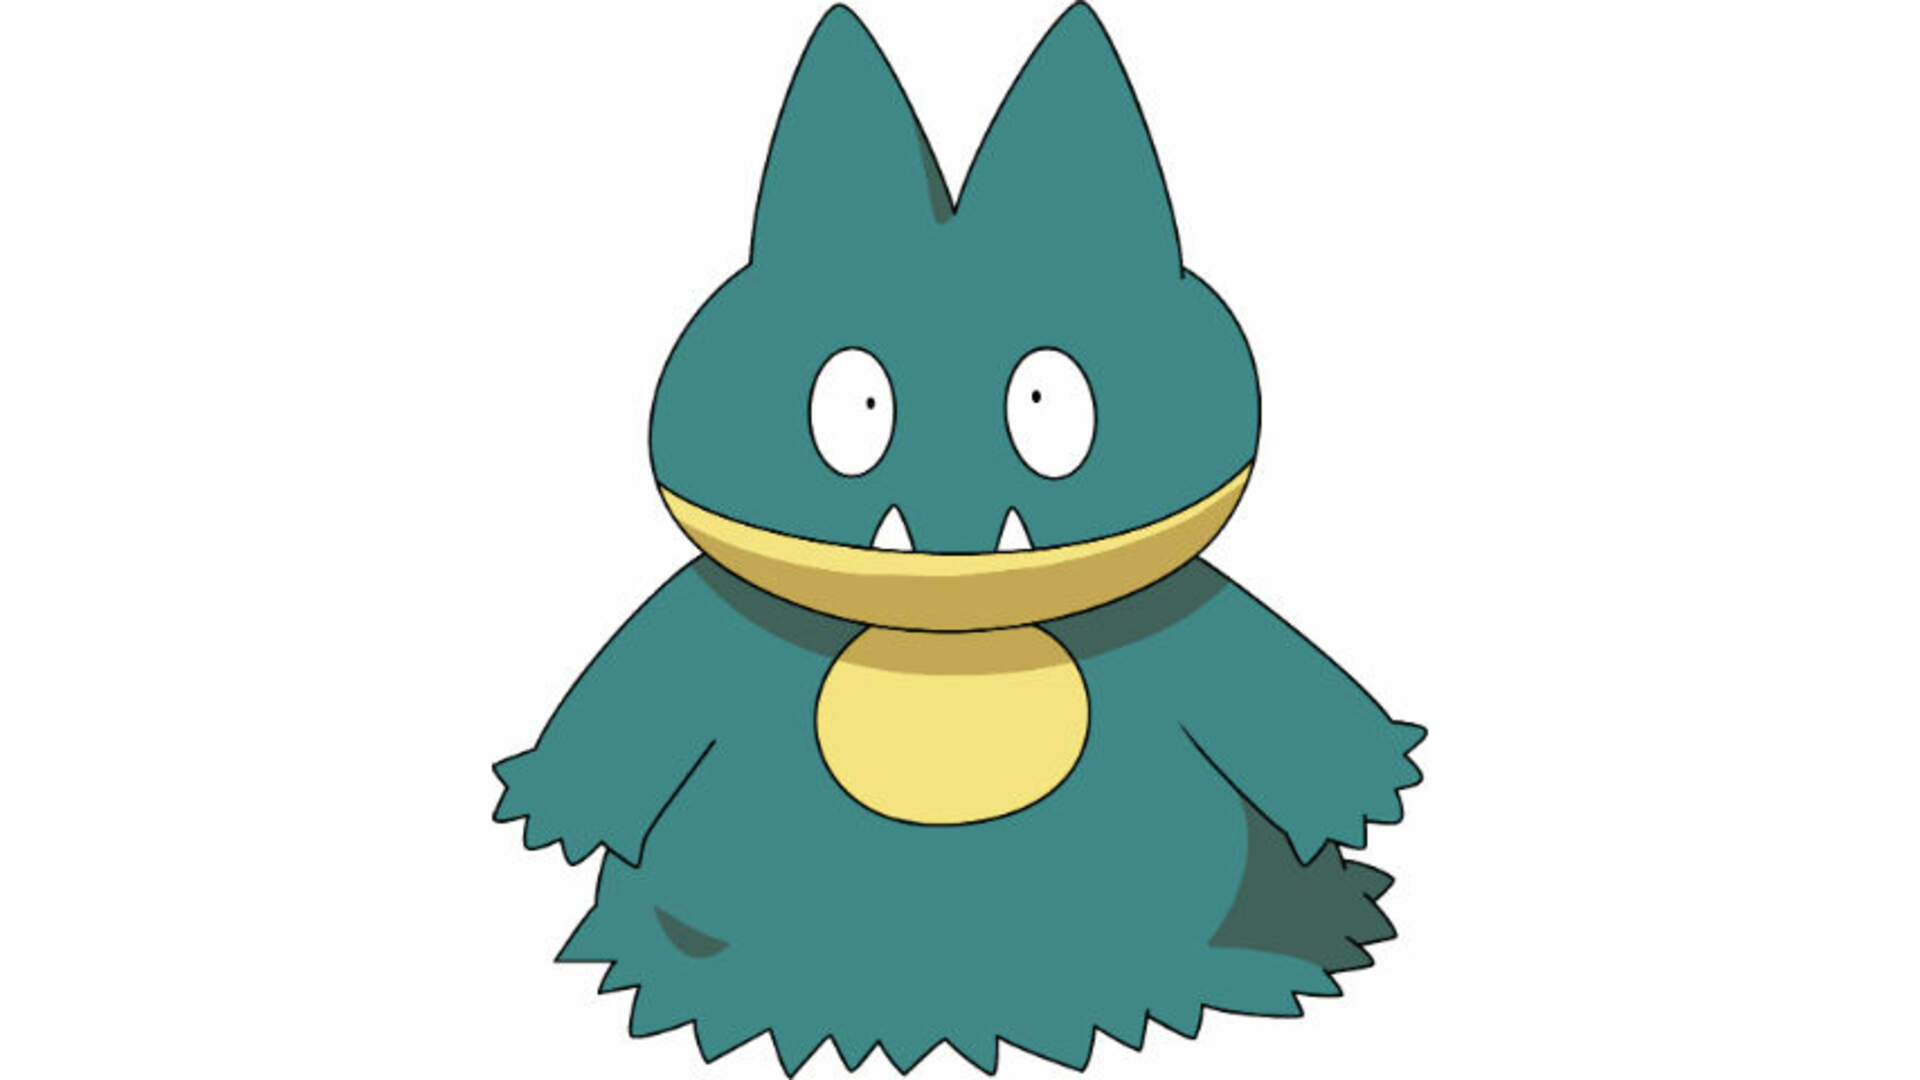 Pokémon Sun and Moon: How to Get Munchlax, Snorlax, and Snorlium Z